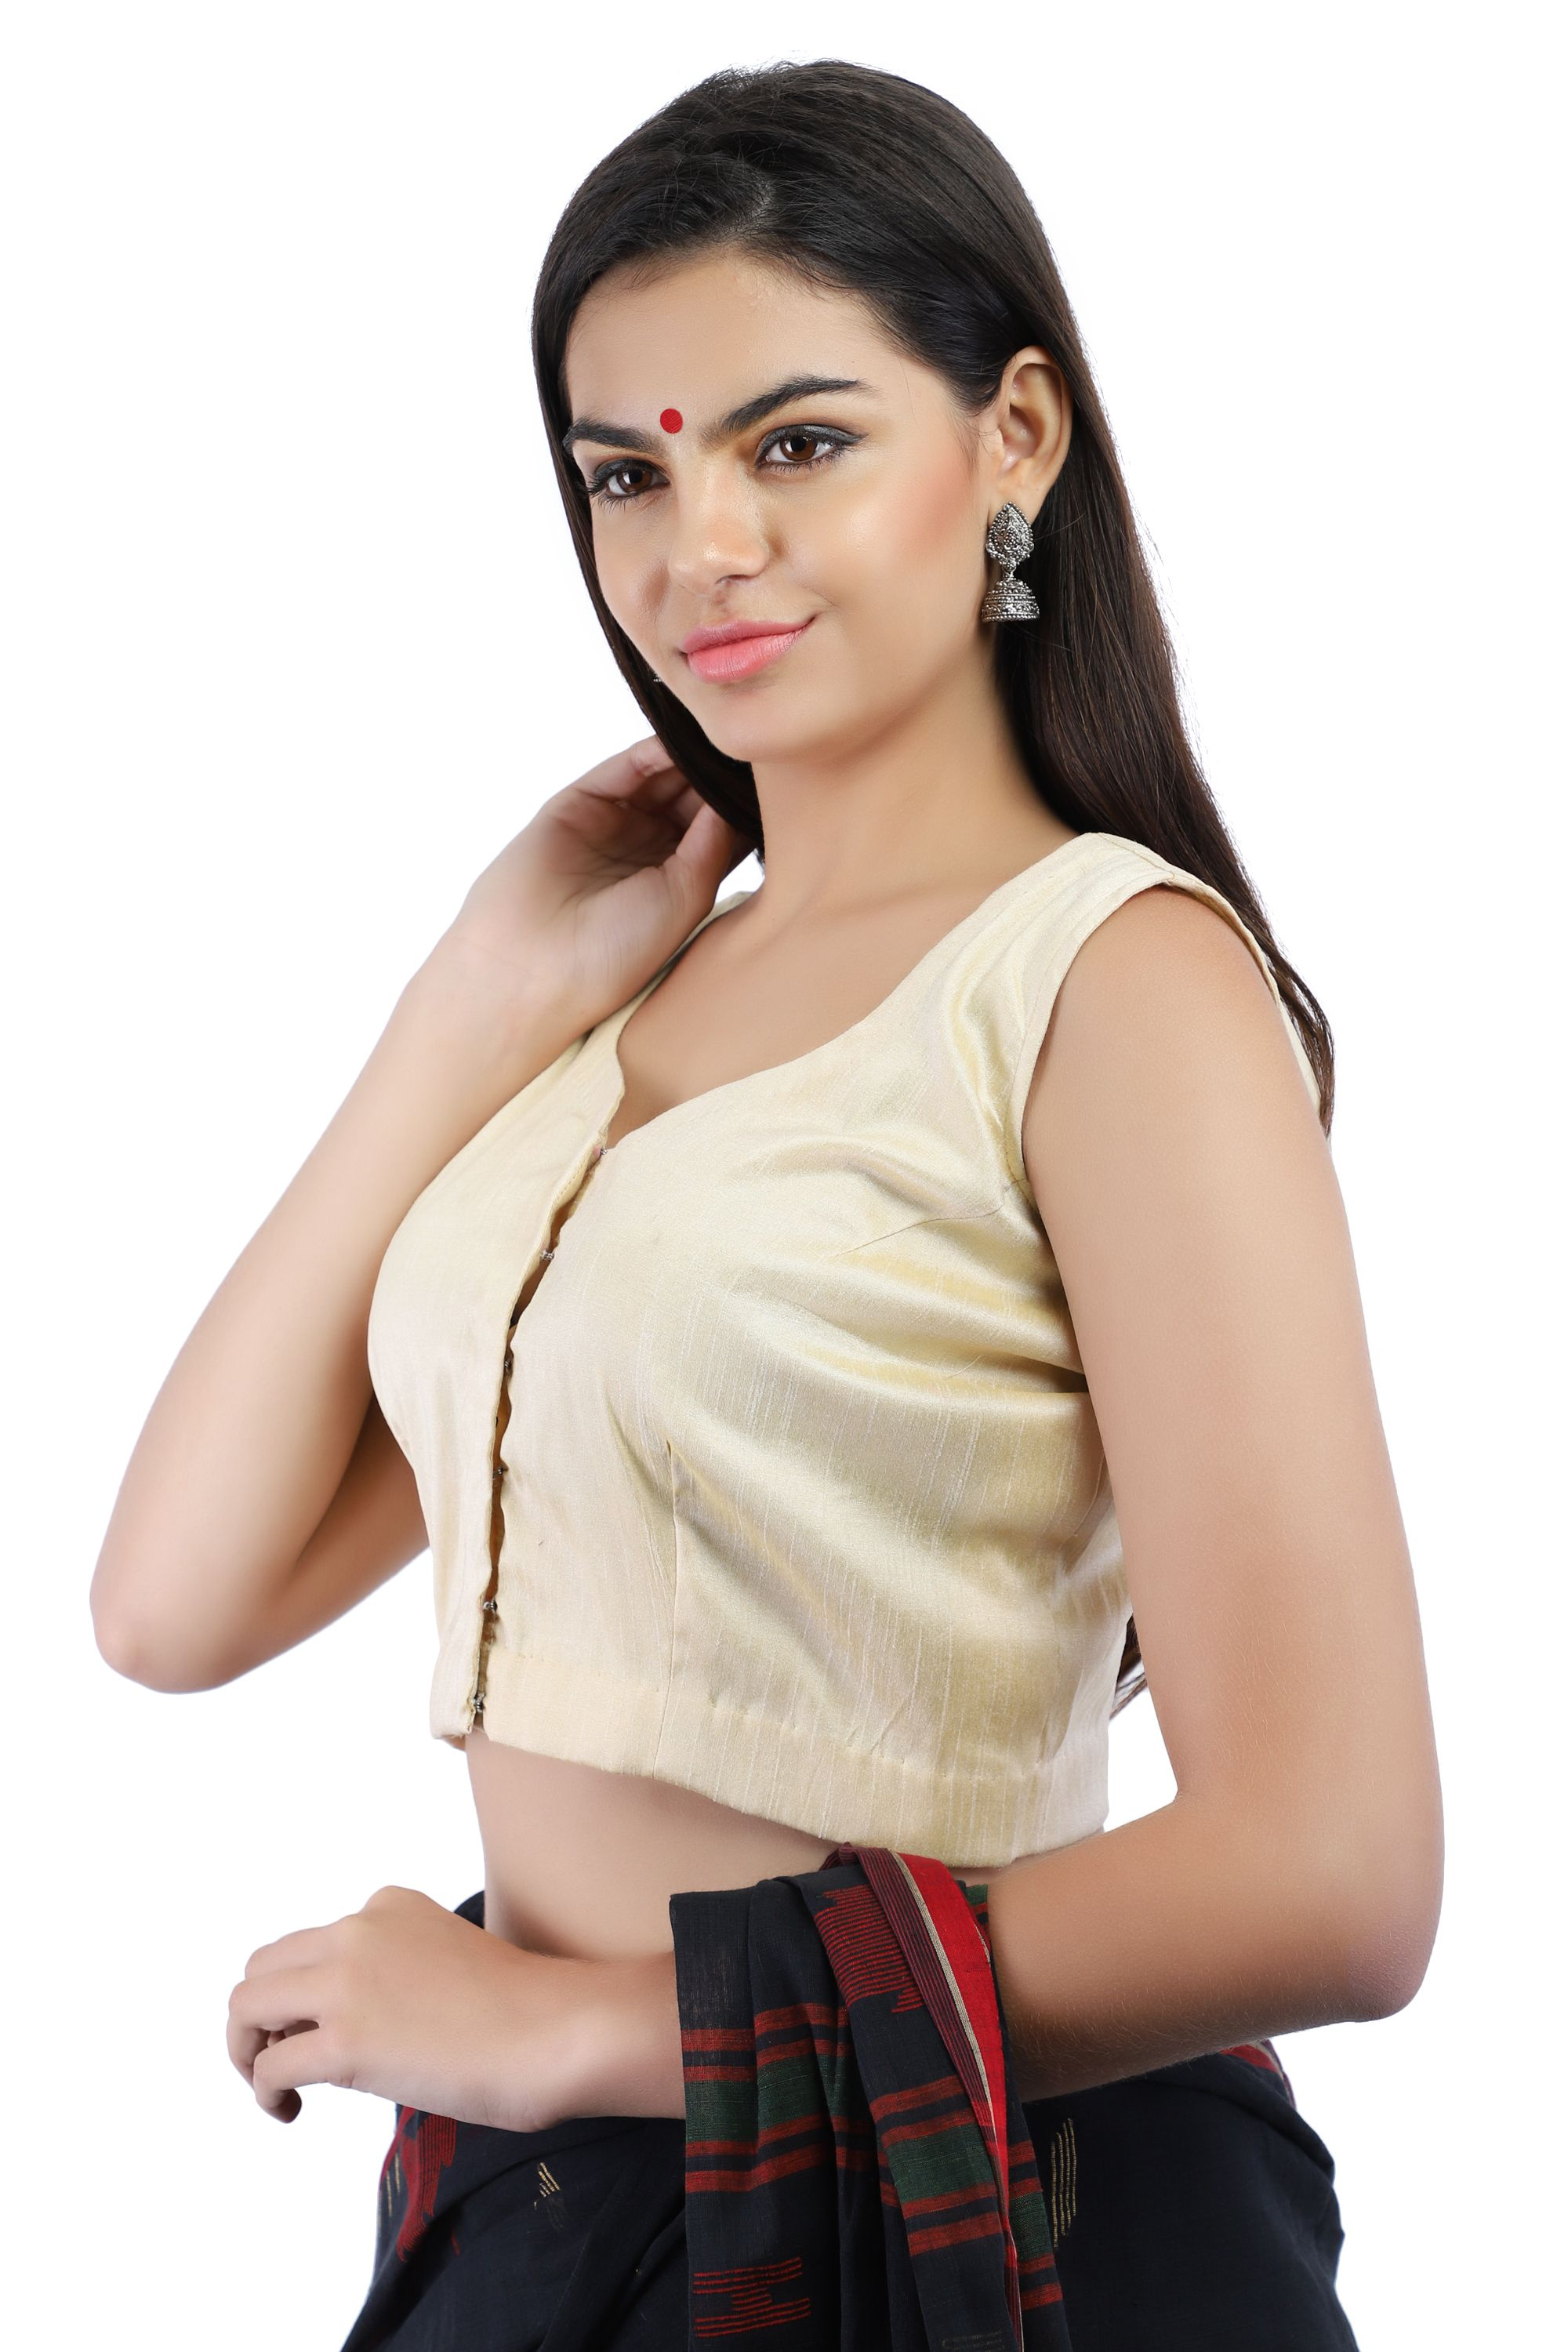 Dupion Silk Non-Padded Blouse in Beige With hook Closure on Front 1